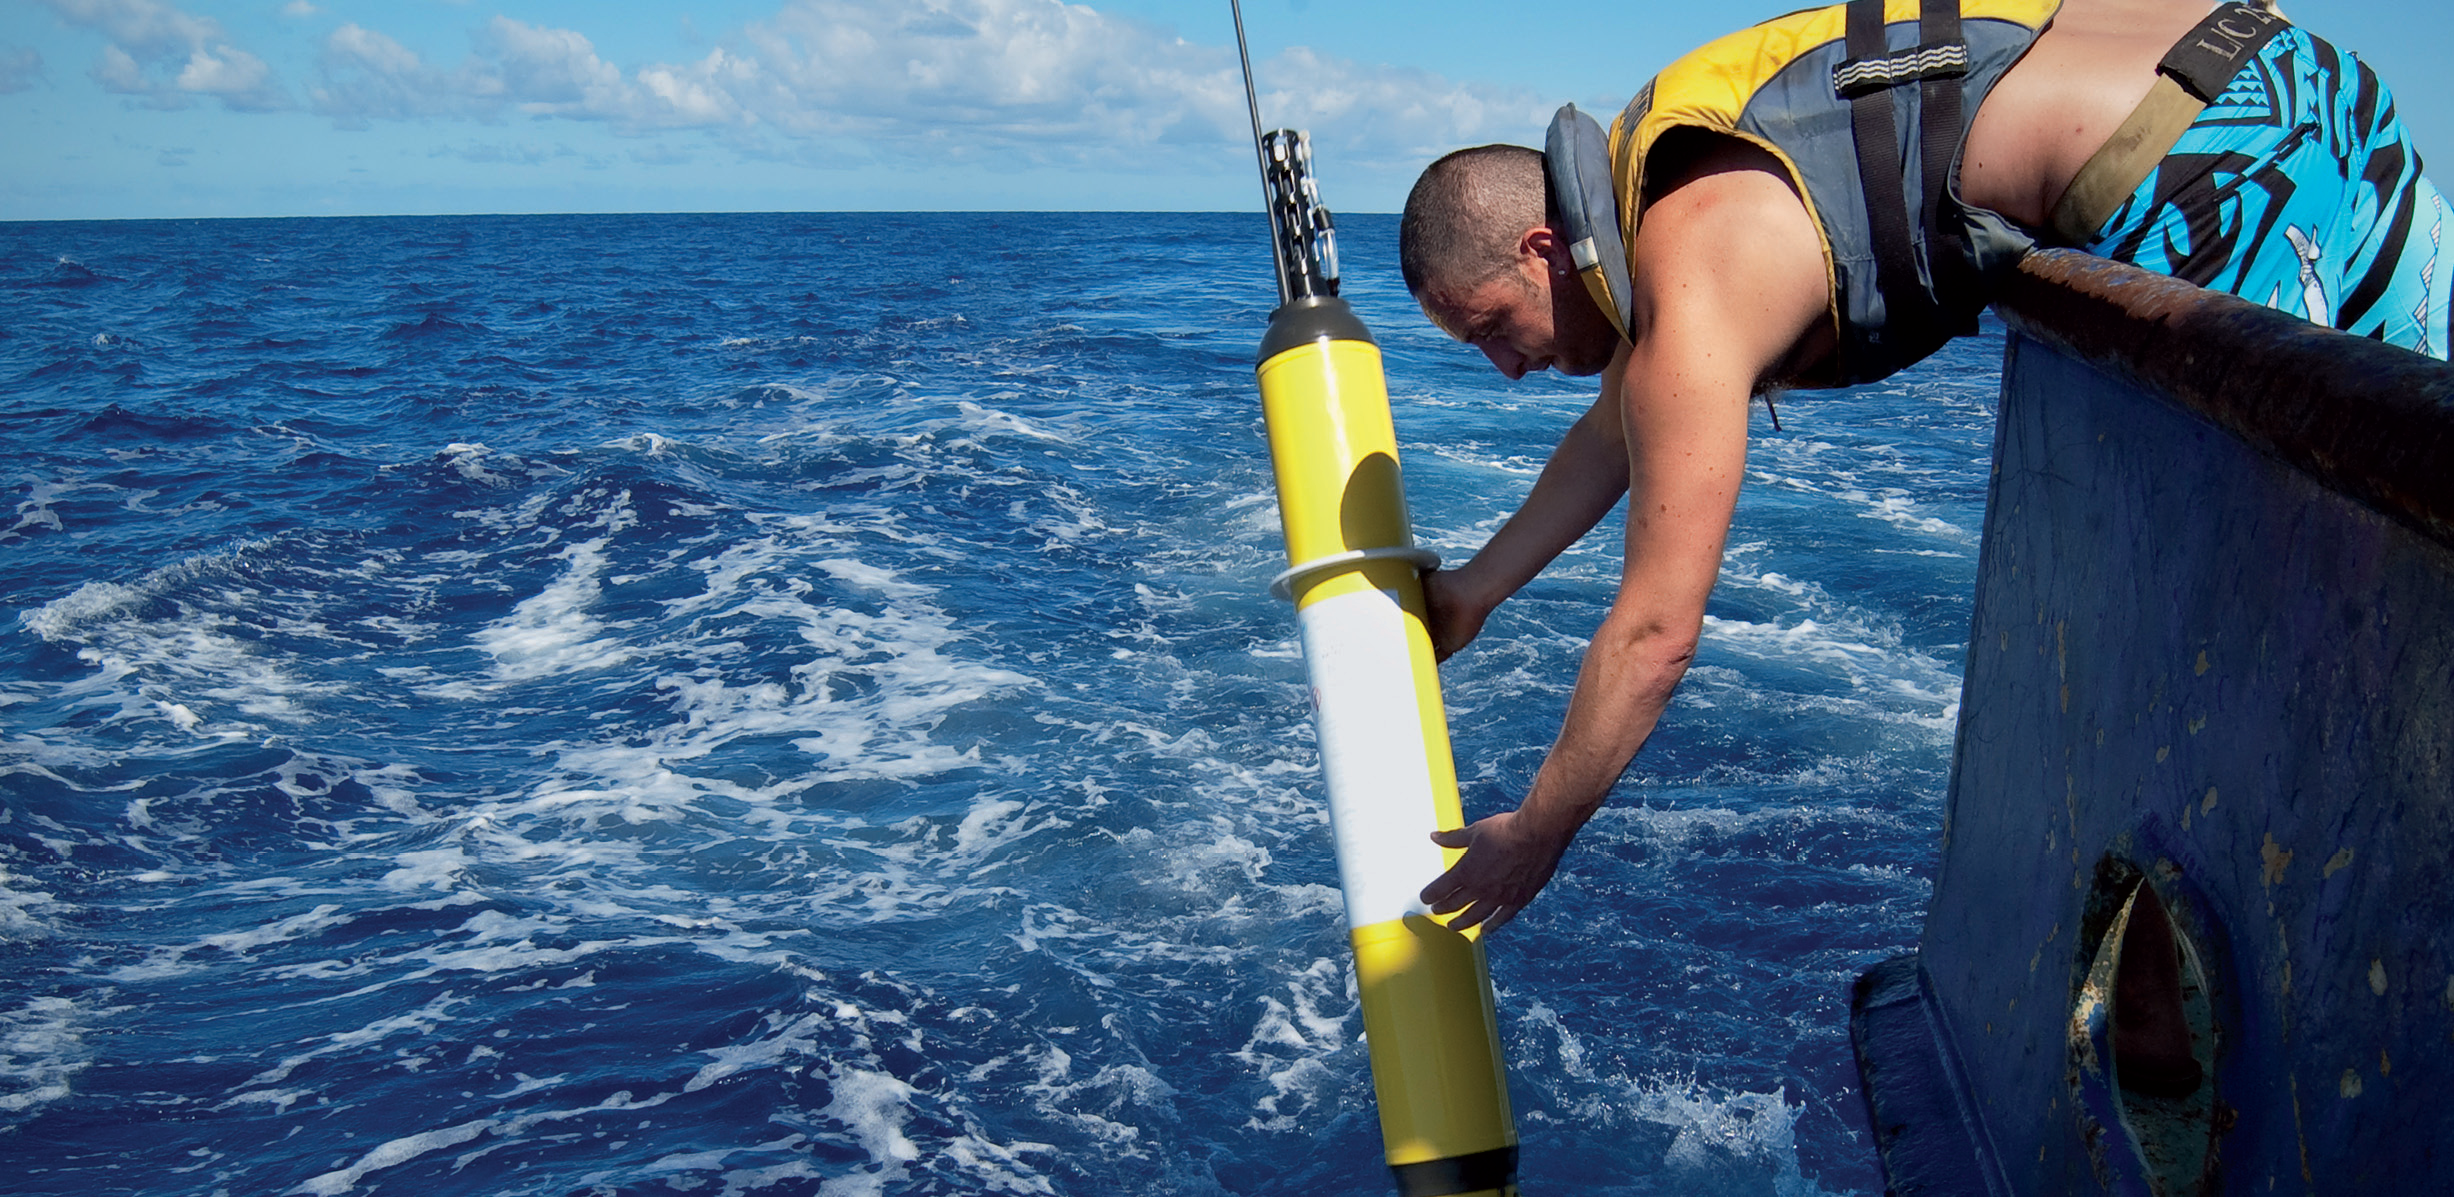 A person wearing a life jacket leans over the edge of a boat, releasing a yellow, cylindrical Argo float device from both hands into the ocean.